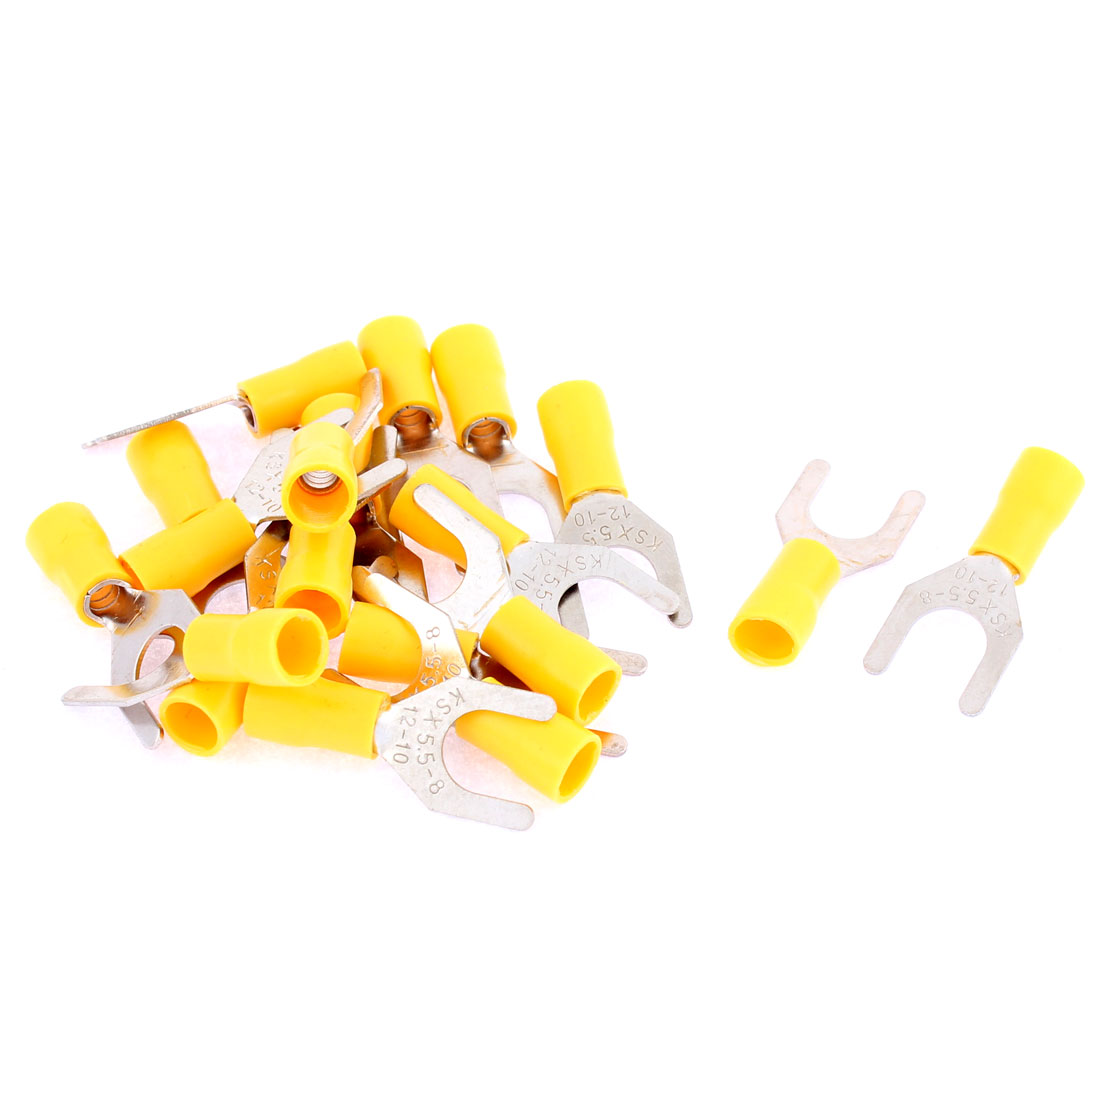 19Pcs SV5.5-8 AWG 12-10 Yellow Pre Insulated Fork Terminals Connectors